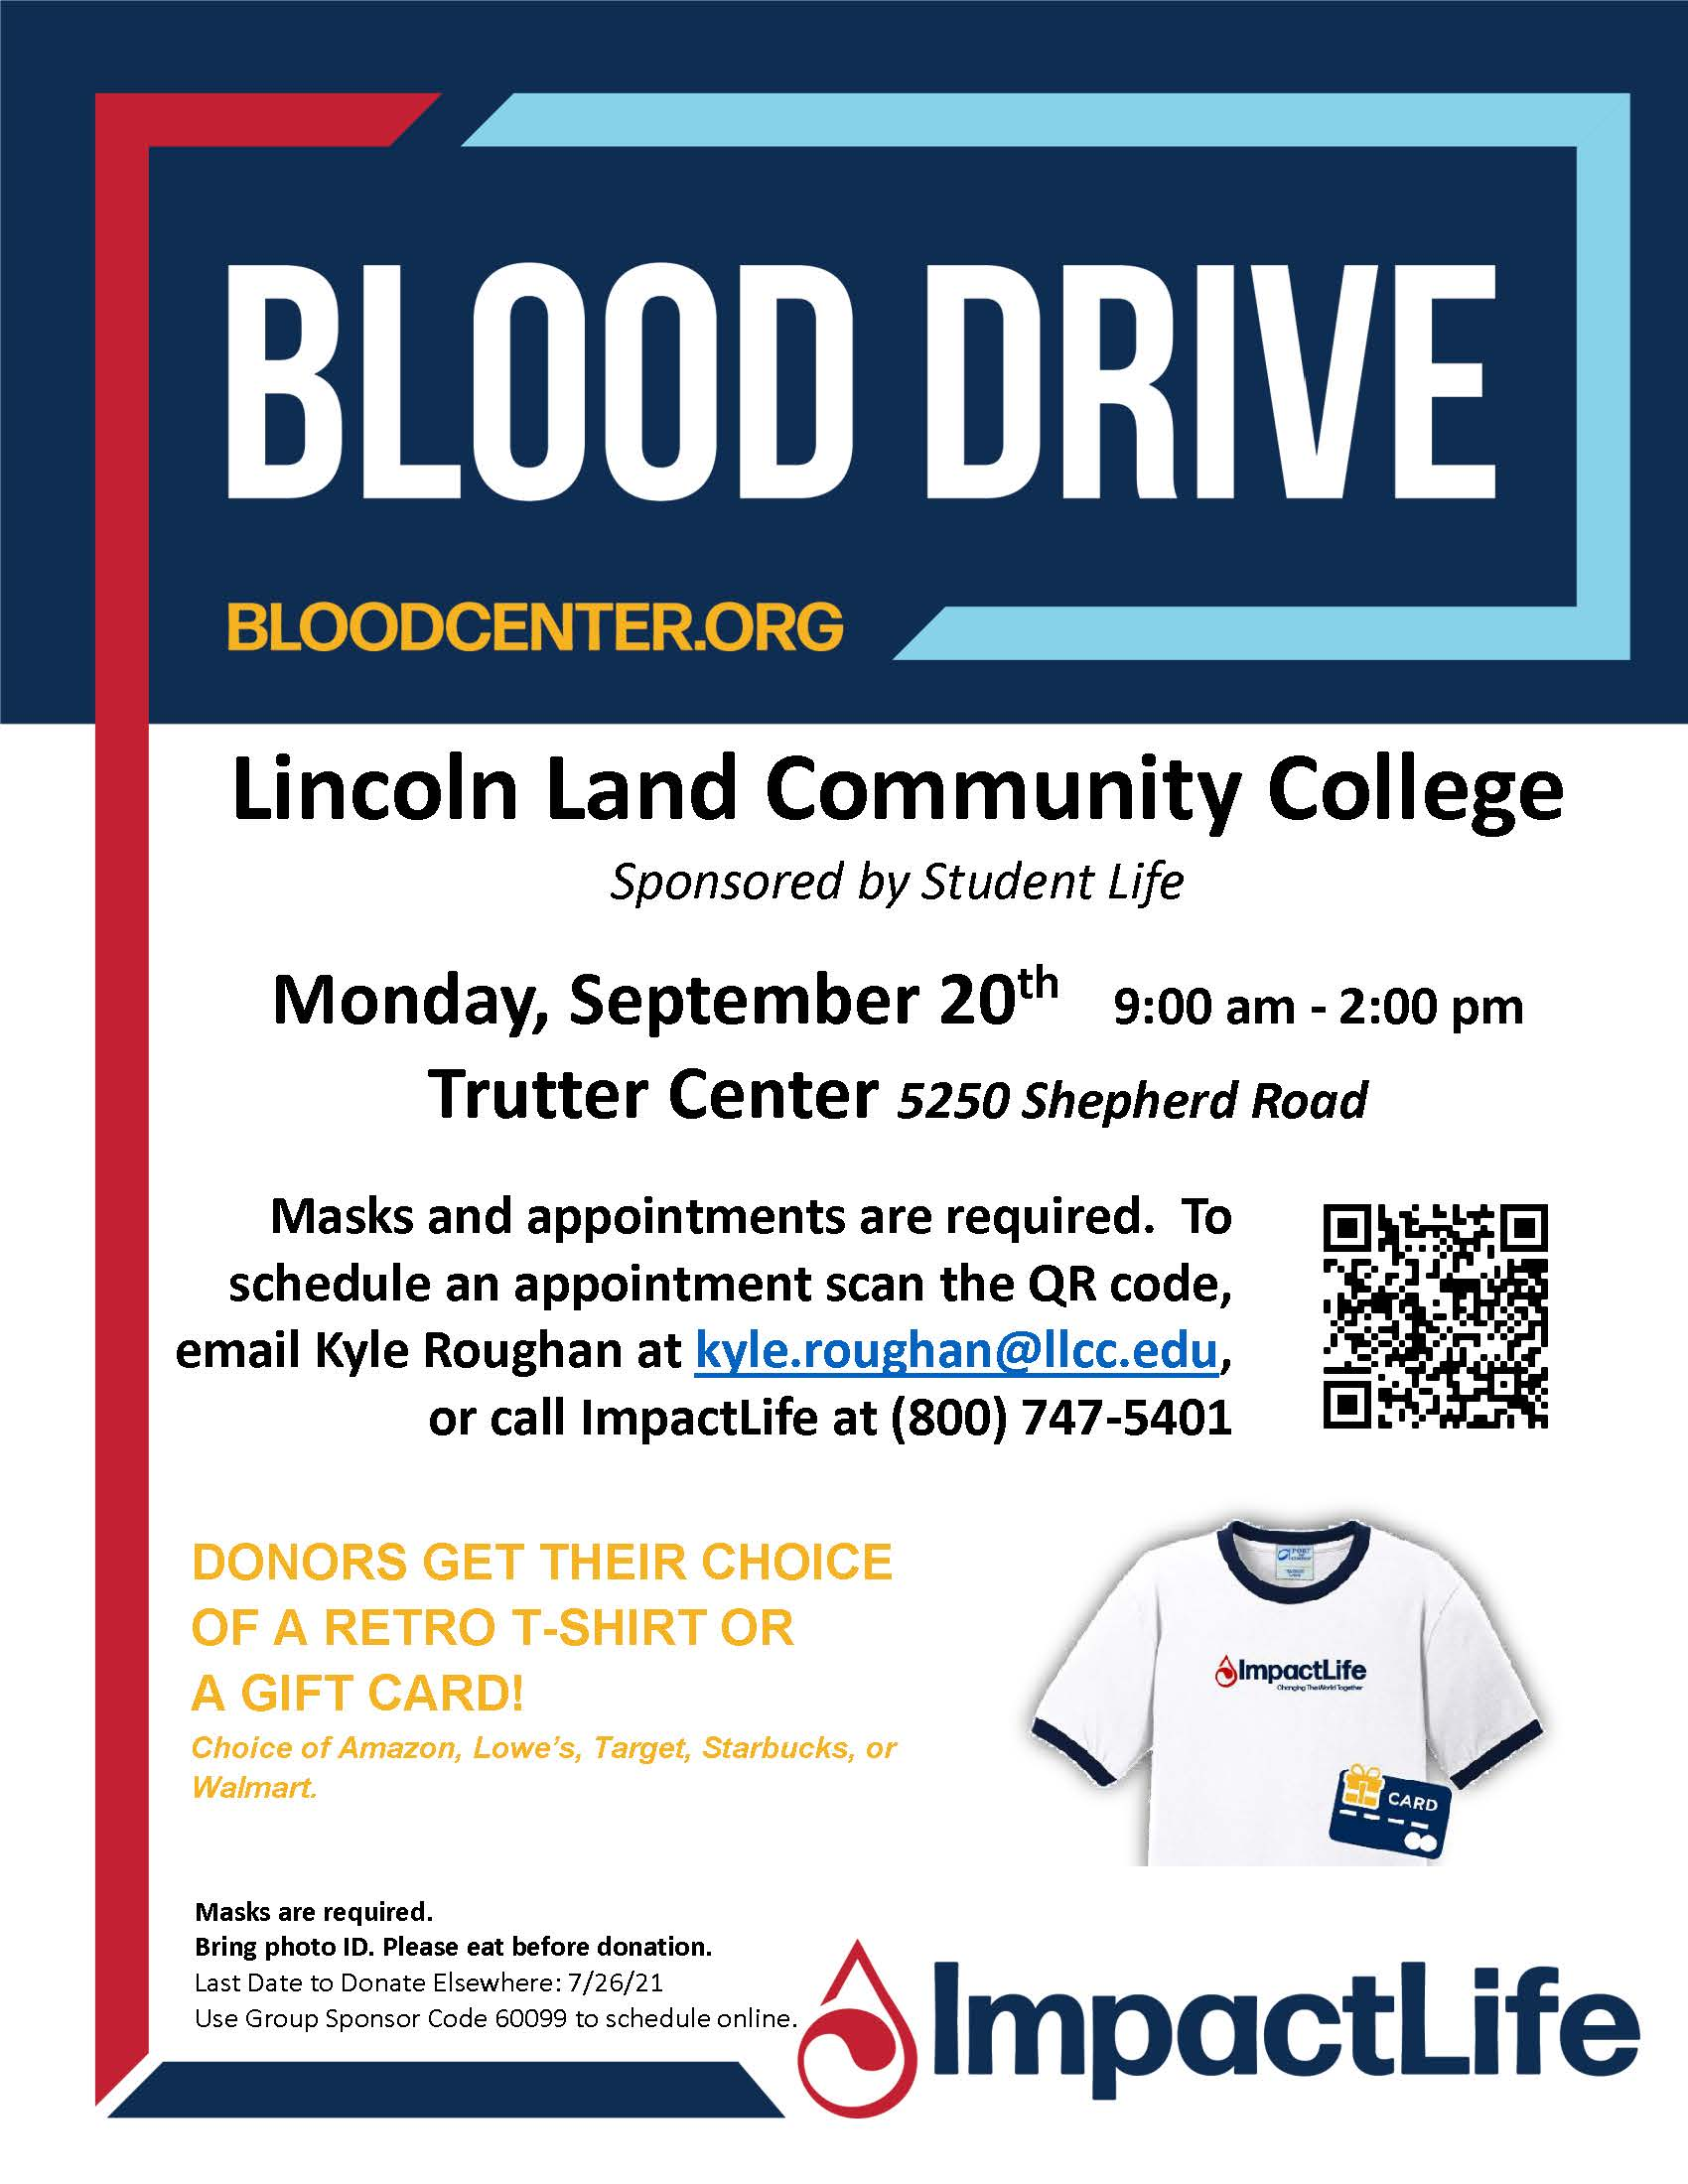 Blood Drive (BLOODCENTER.ORG) at Lincoln Land Community College, sponsored by Student Life. Monday, September 20th, 9:00 AM to 2:00 PM in the Trutter Center (5250 Shepherd Road). Masks and appointments are required. To schedule an appointment, email Kyle Roughan at kyle.roughan@llcc.edu or call ImpactLife at (800) 747-5401. Donners get their choice of a retro T-Shirt or a gift card (choice of Amazon, Lowe's, Target, Starbucks, or Walmart) Masks are Required. Bring photo ID. Please eat before donation. The last date to donate elsewhere is 7/26/21. Use group sponsor code 6099 to schedule online.